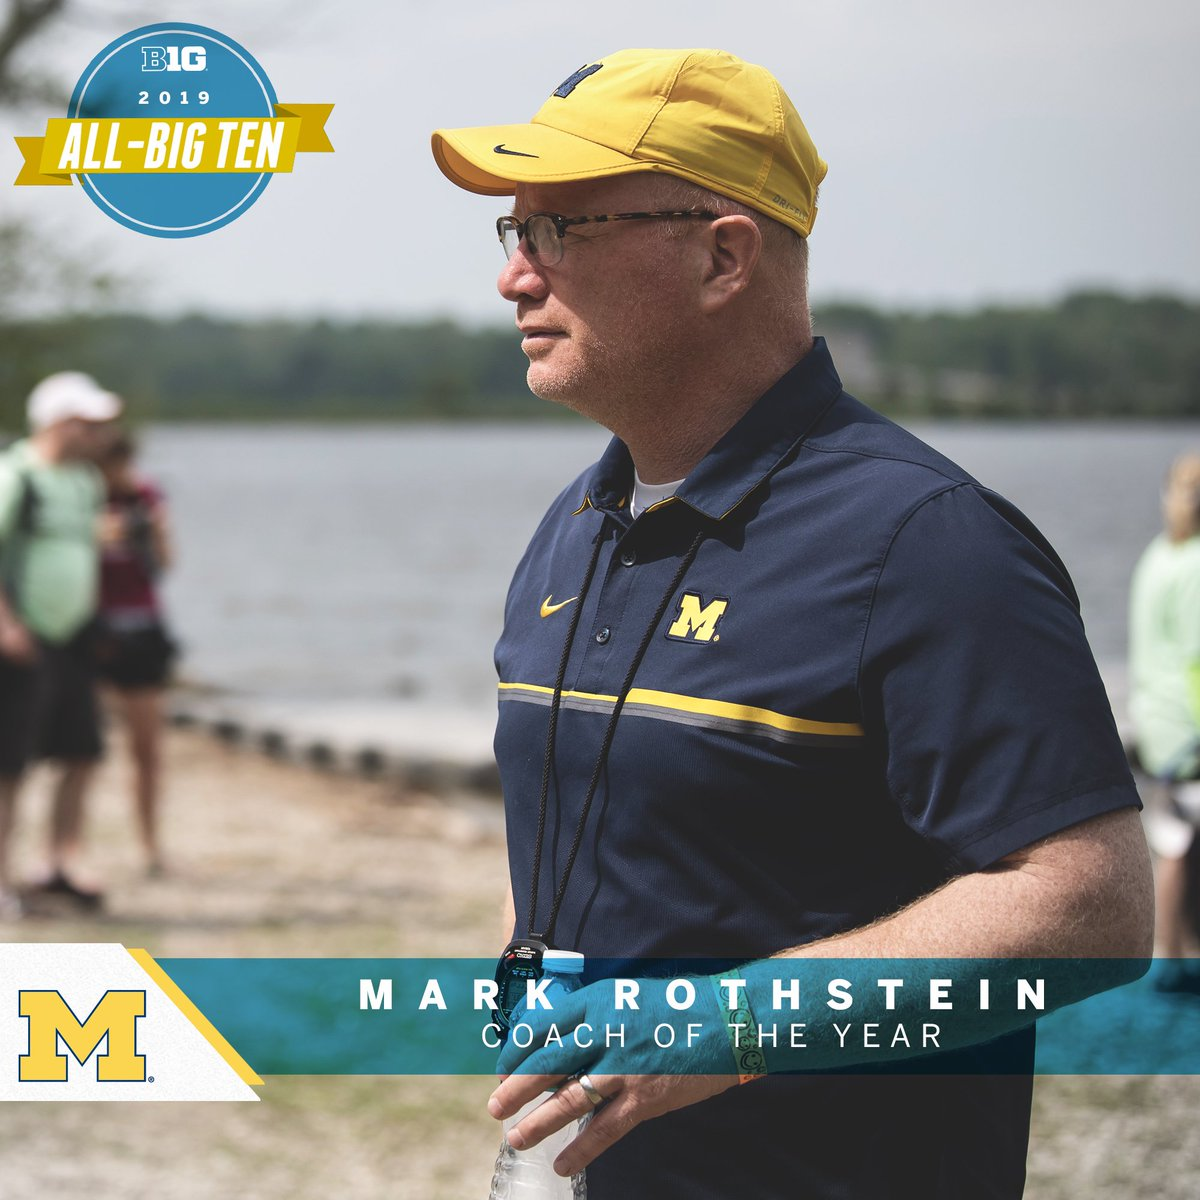 Mark Rothstein of @umichrowing named 2019 Big Ten Rowing Coach of the Year. #B1GRow